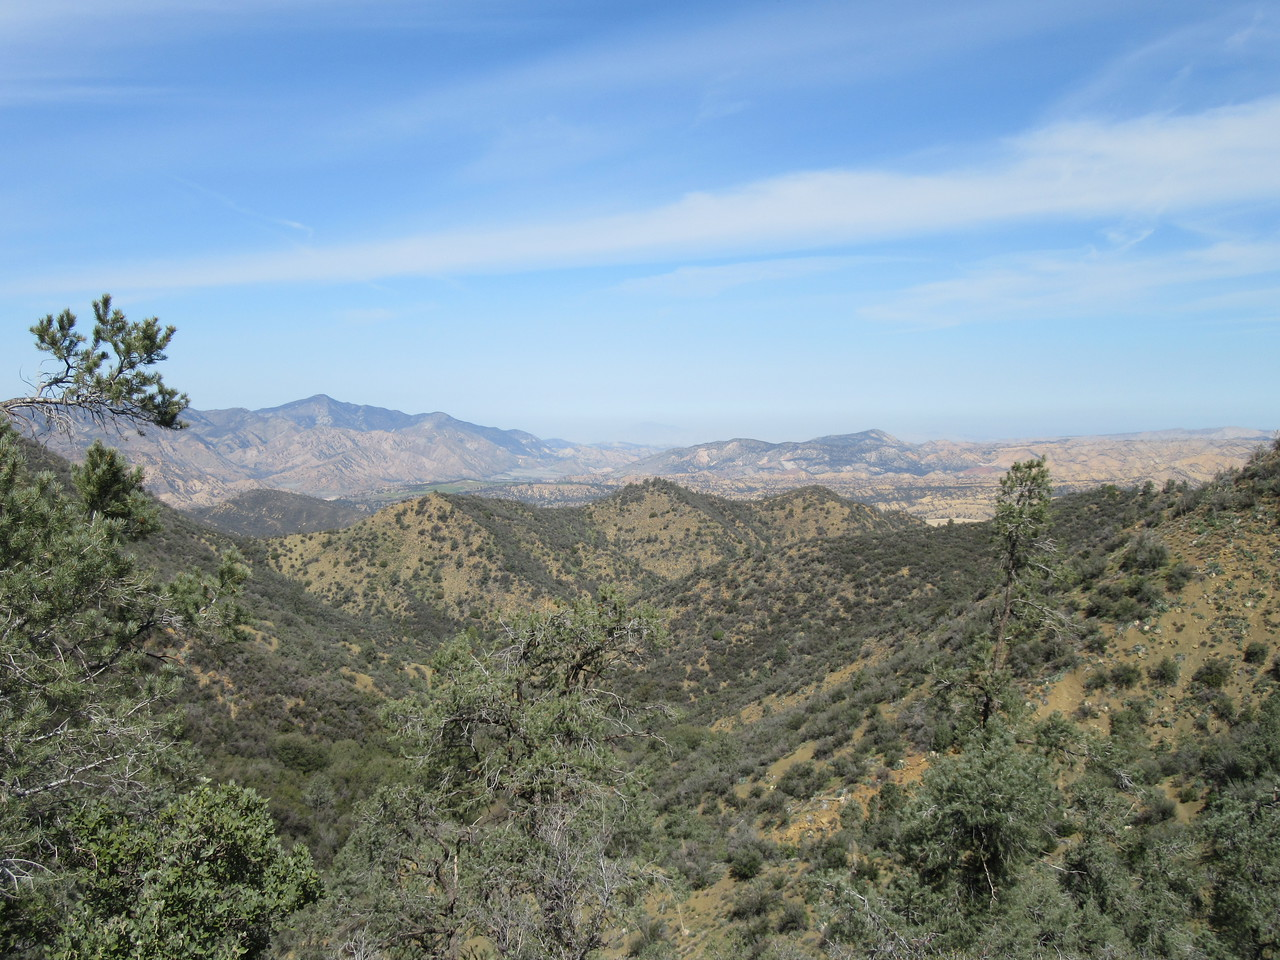 ... Bardley and I had this great view north over the Cuyama River basin and surrounding mountains, before ...